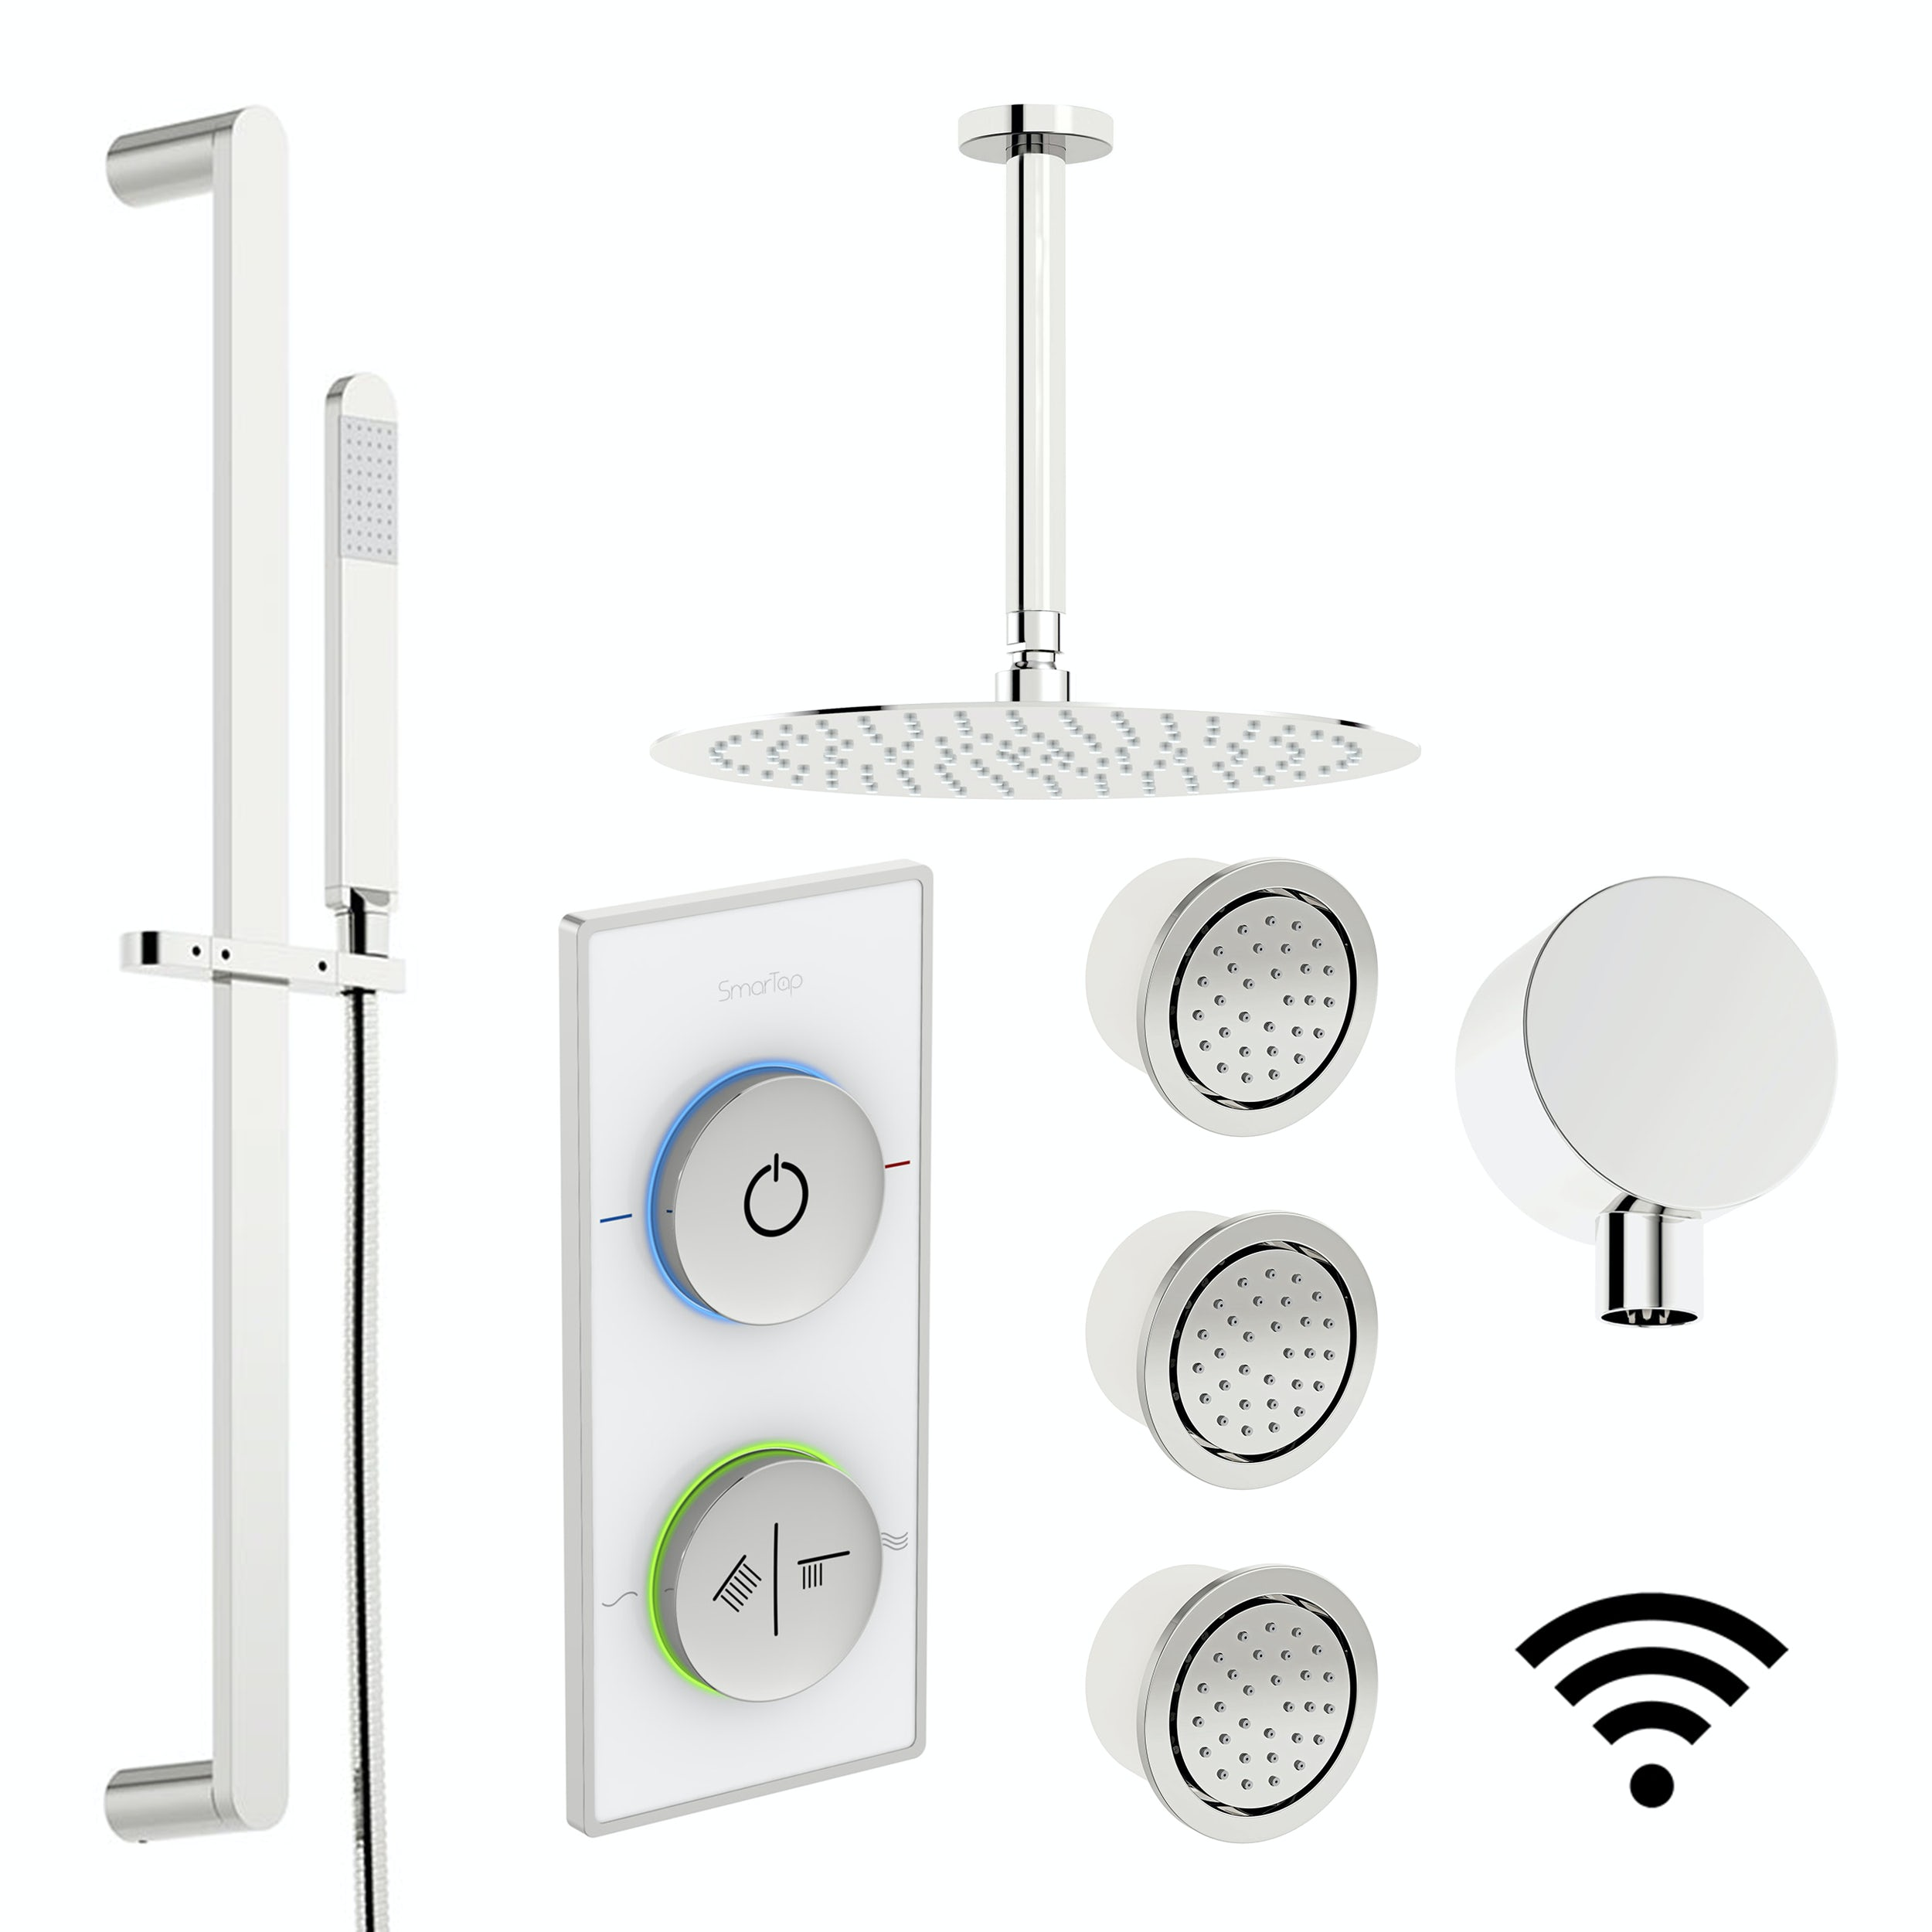 SmarTap white smart shower system with complete round ceiling shower set